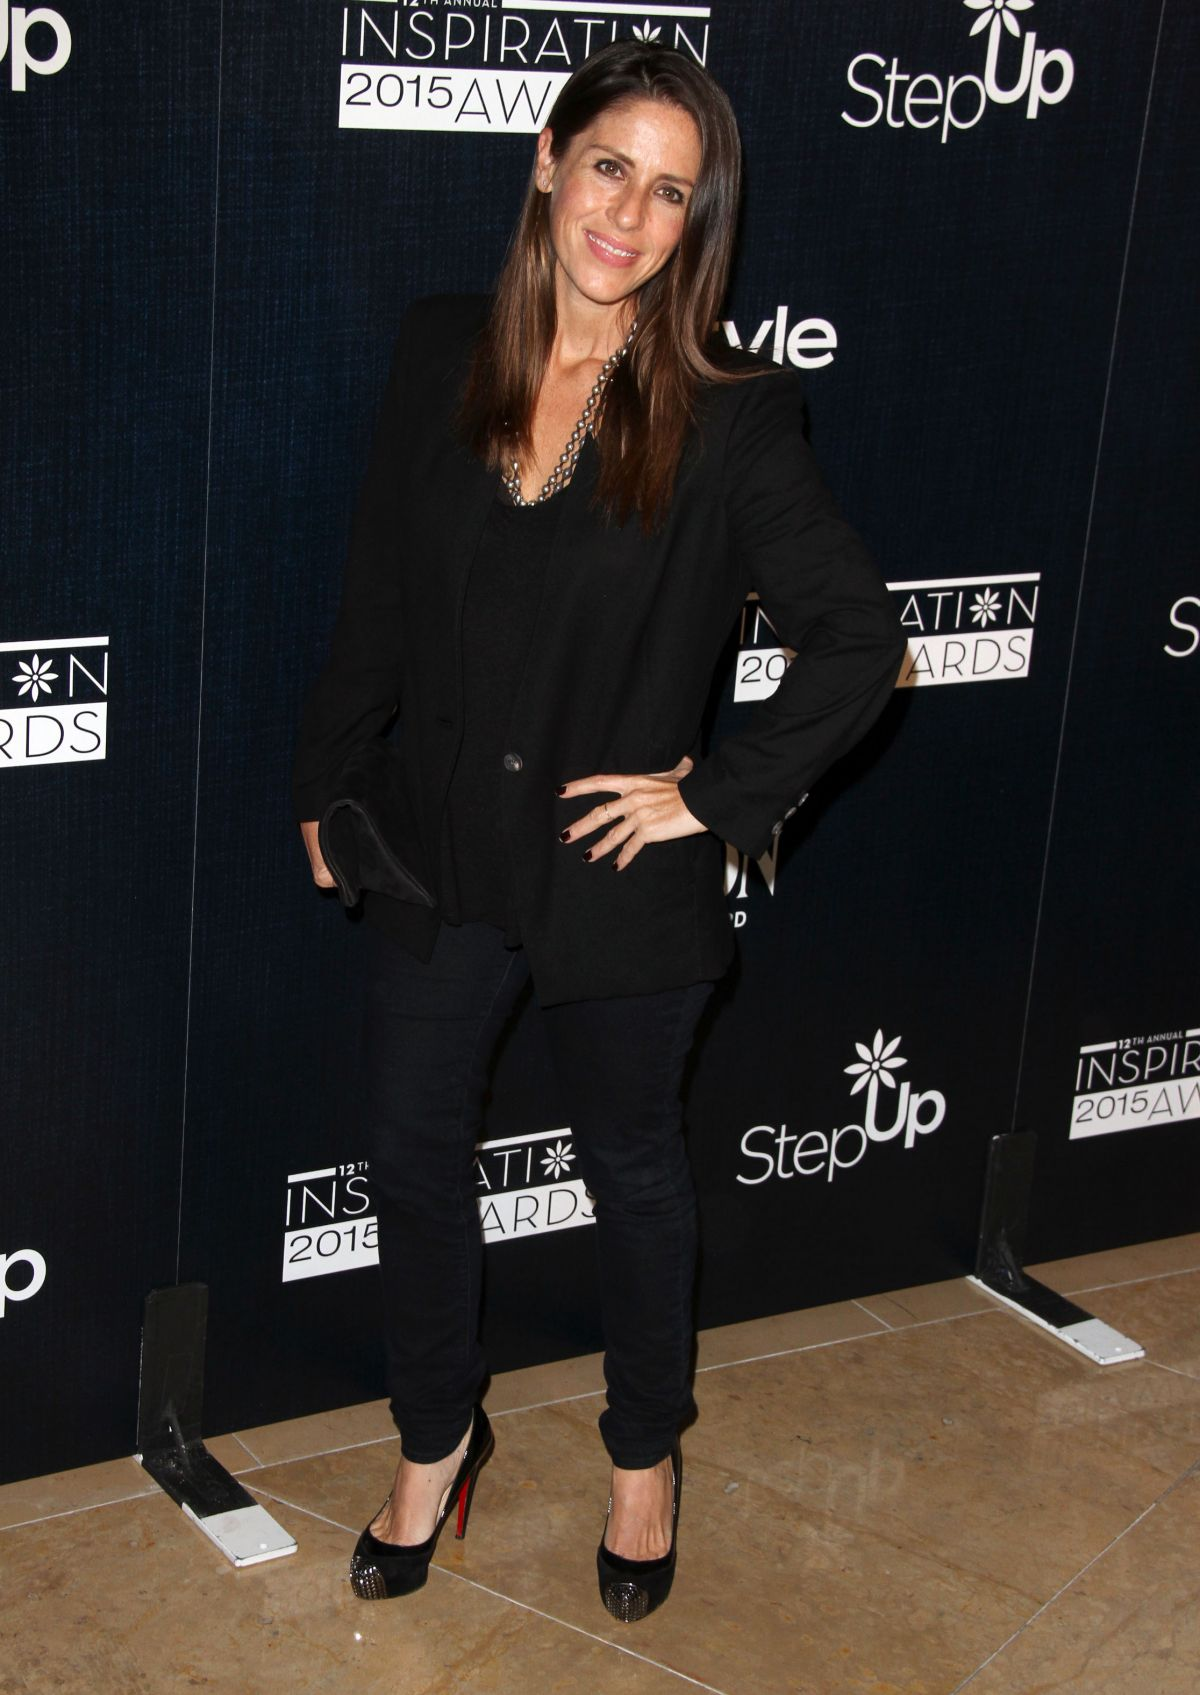 SOLEIL MOON FRYE at Step Up Women's Inspiration Awards in Beverly Hills